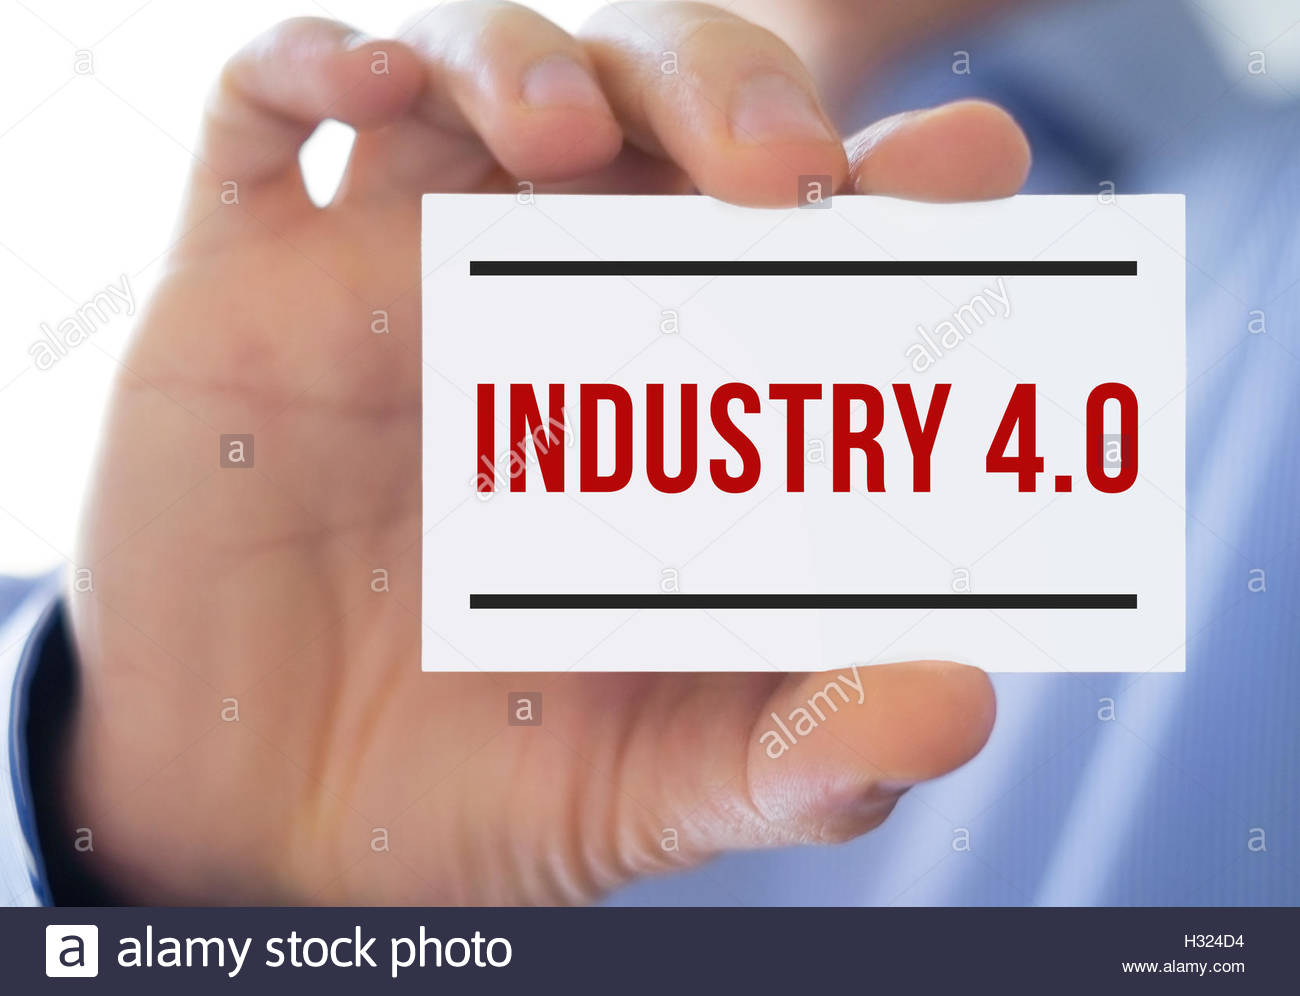 industry 4.0 - Stock Image